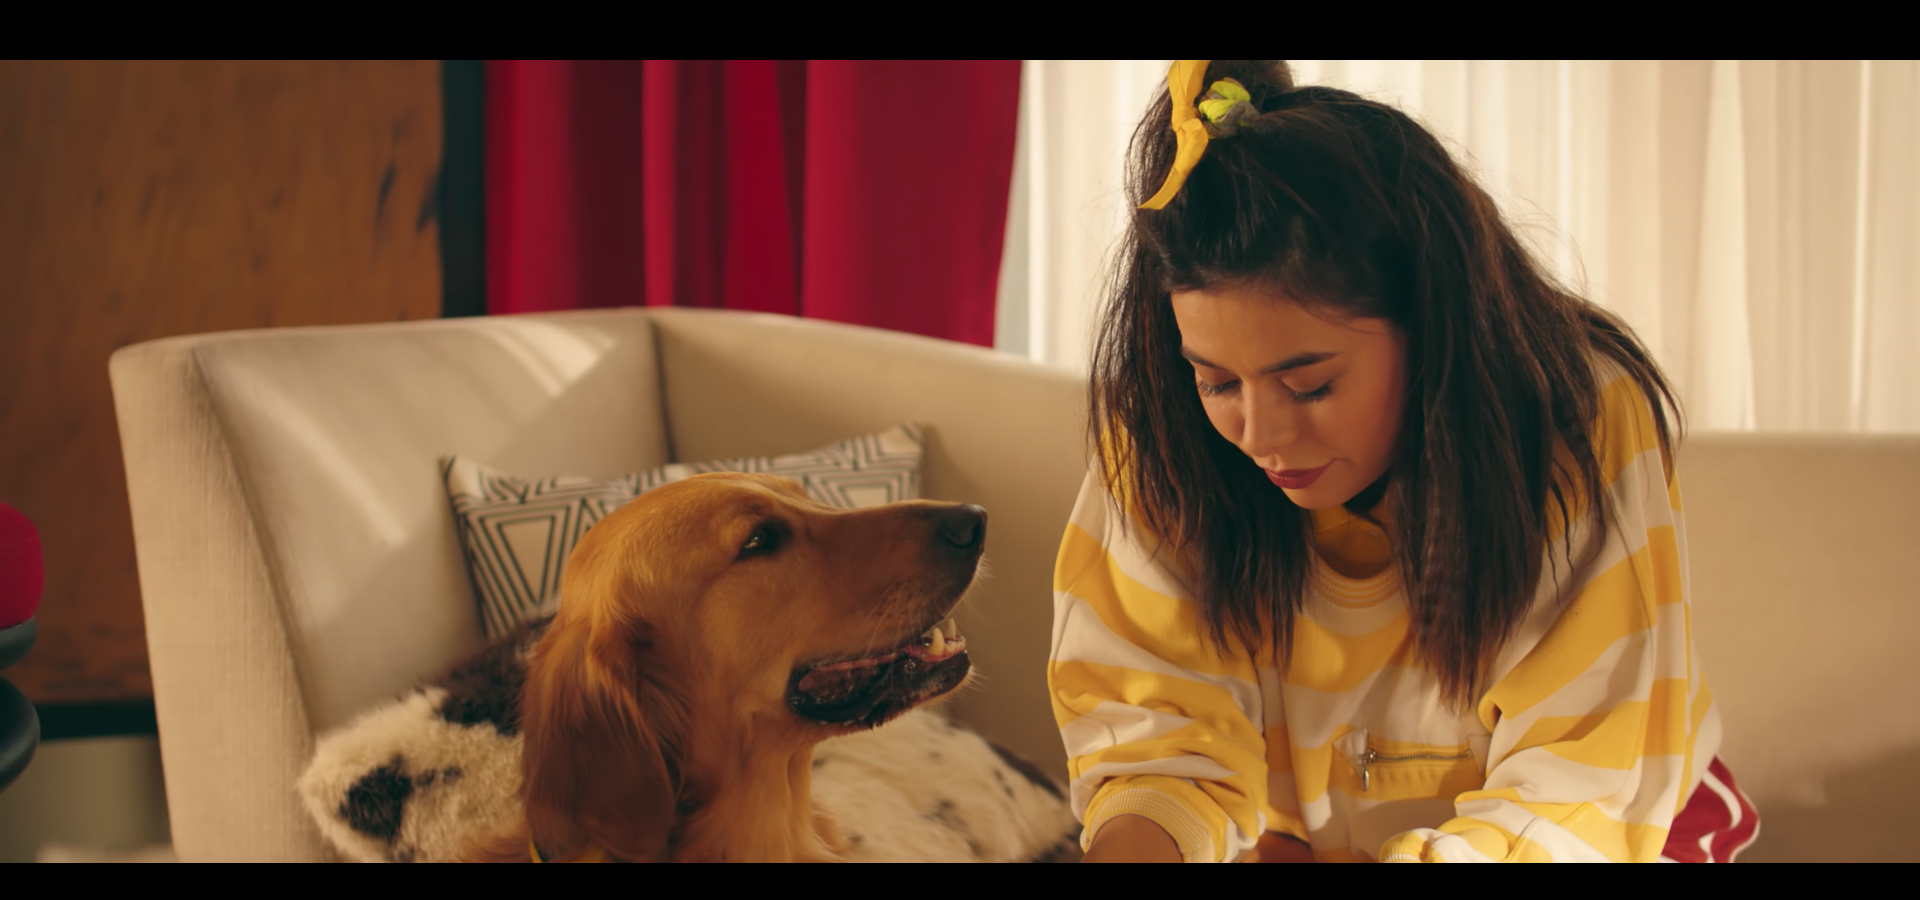 Marshmello Shows Bond Between Woman And Pet Dog In Tear Jerking Happier Rolling Stone